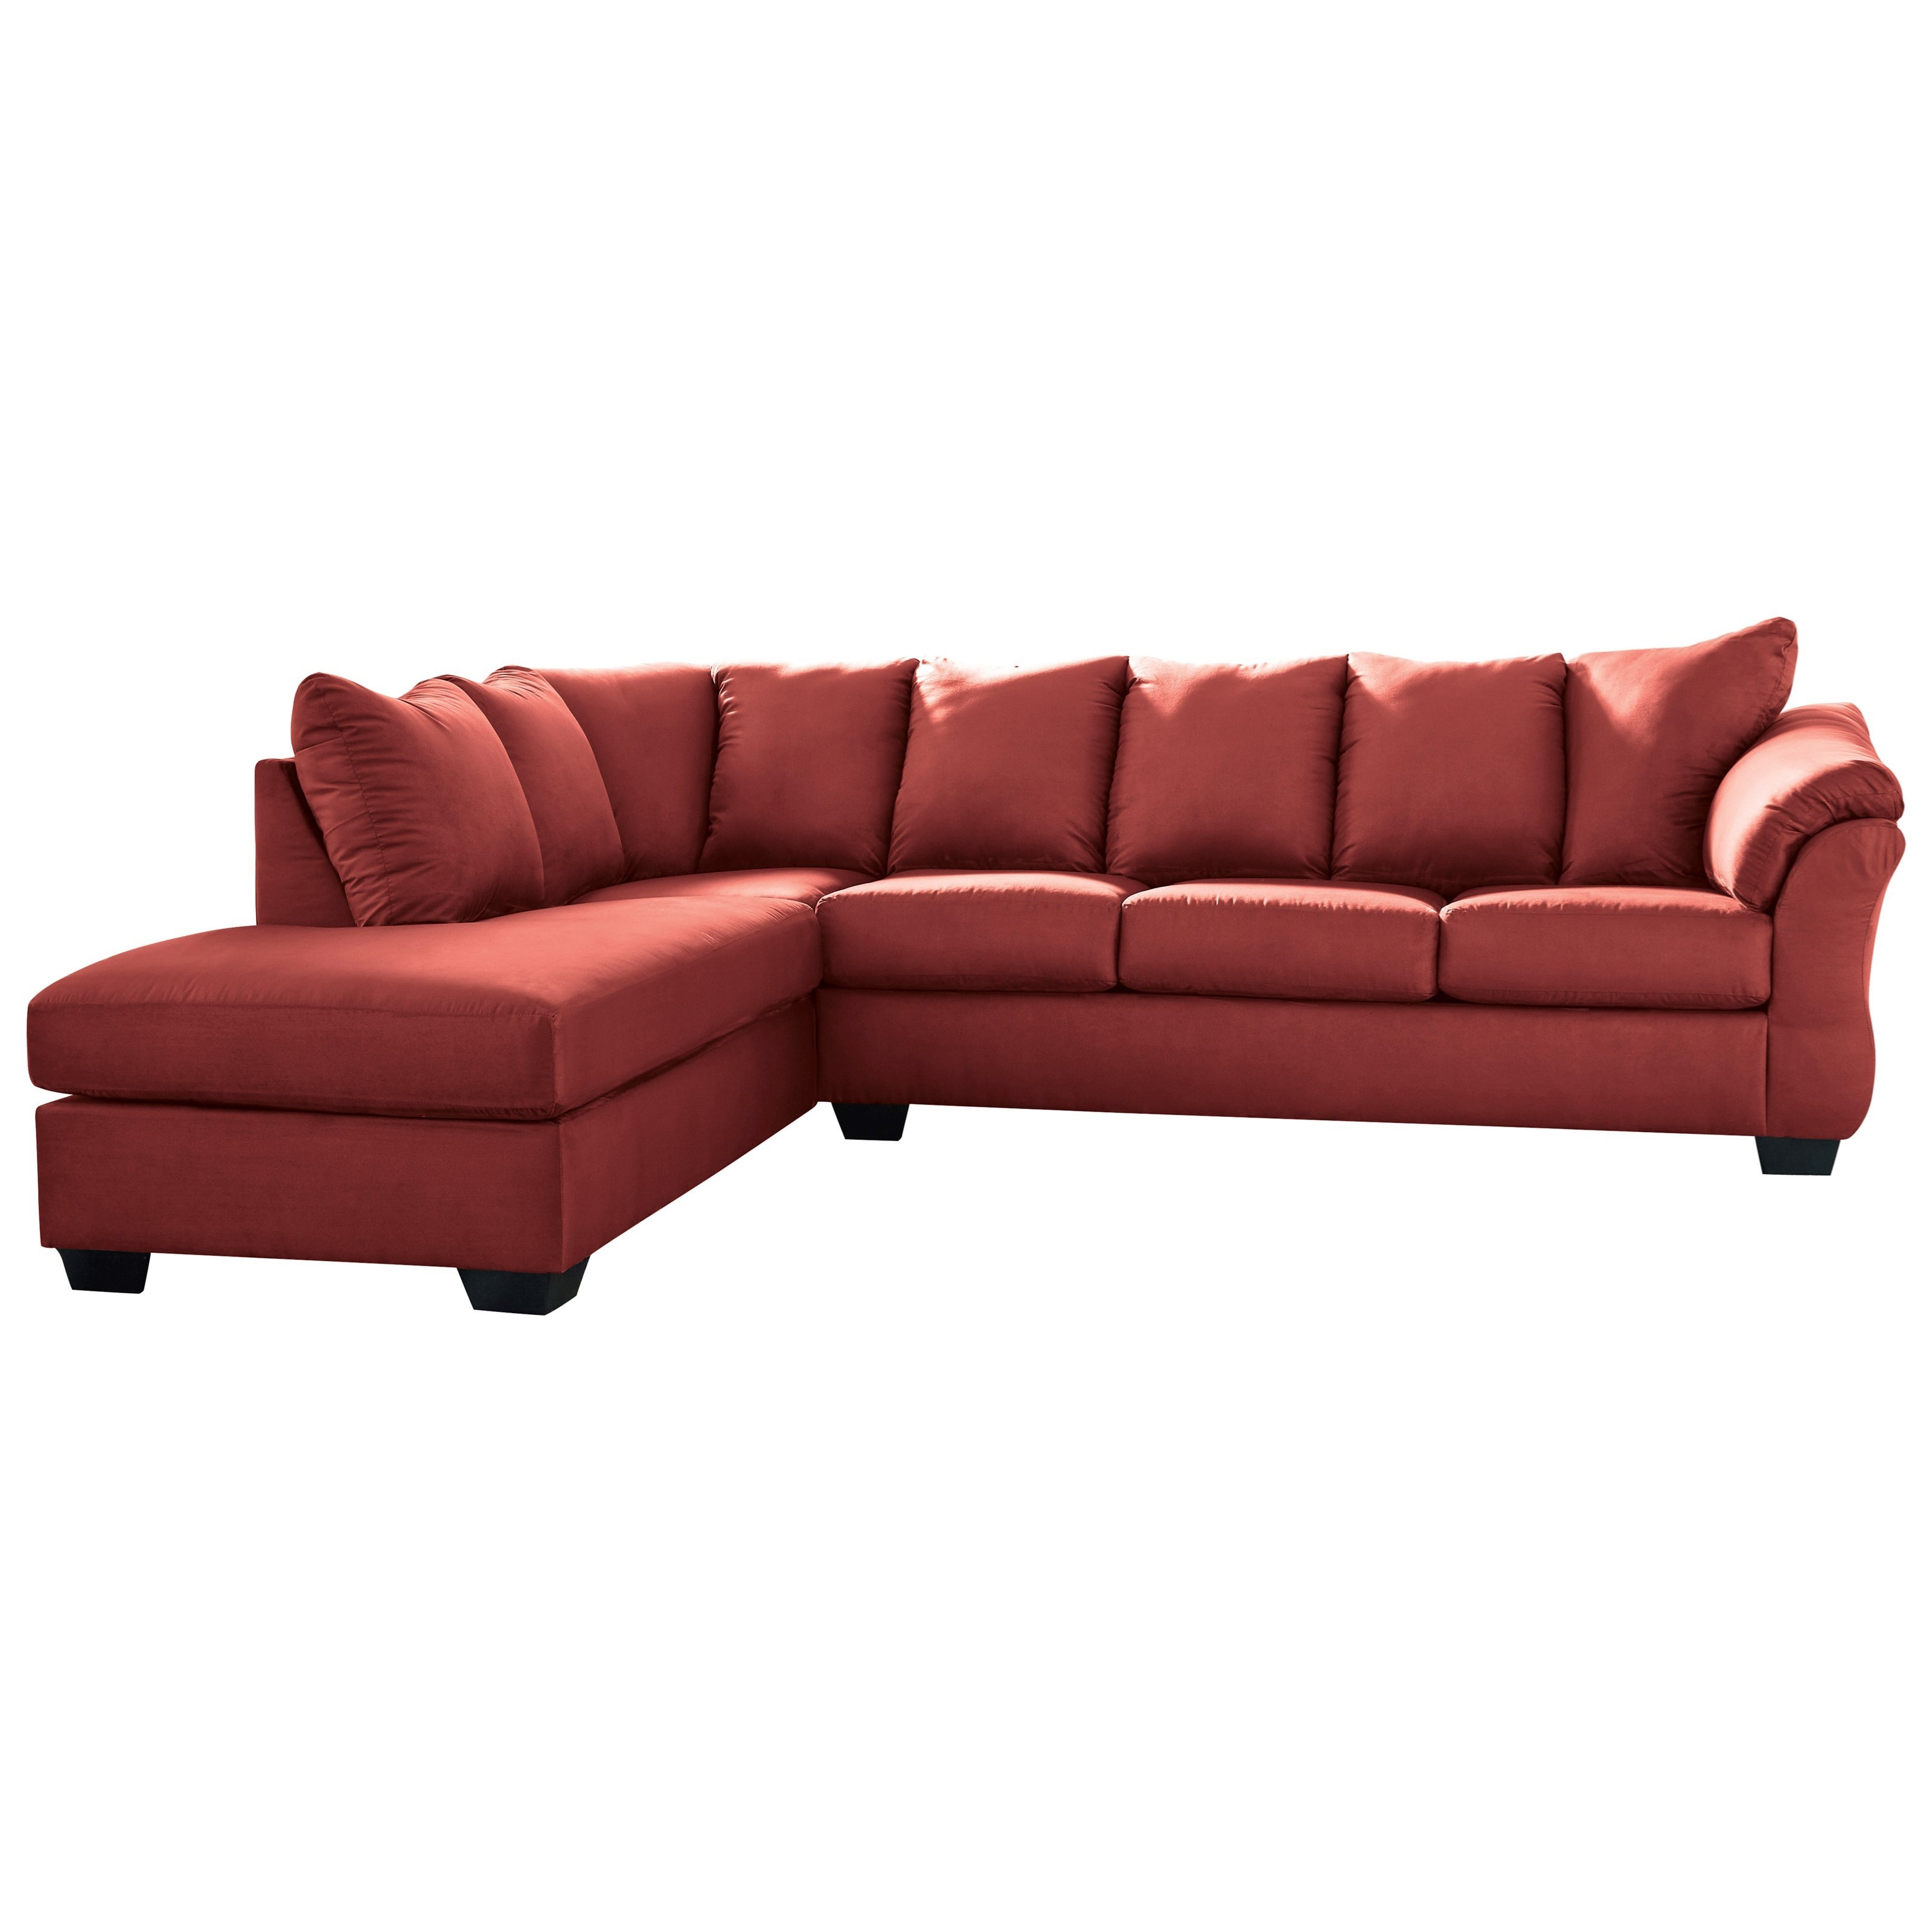 Darcy - Salsa 2-Piece Sectional Sofa with Chaise by Ashley (Signature Design) at Johnny Janosik